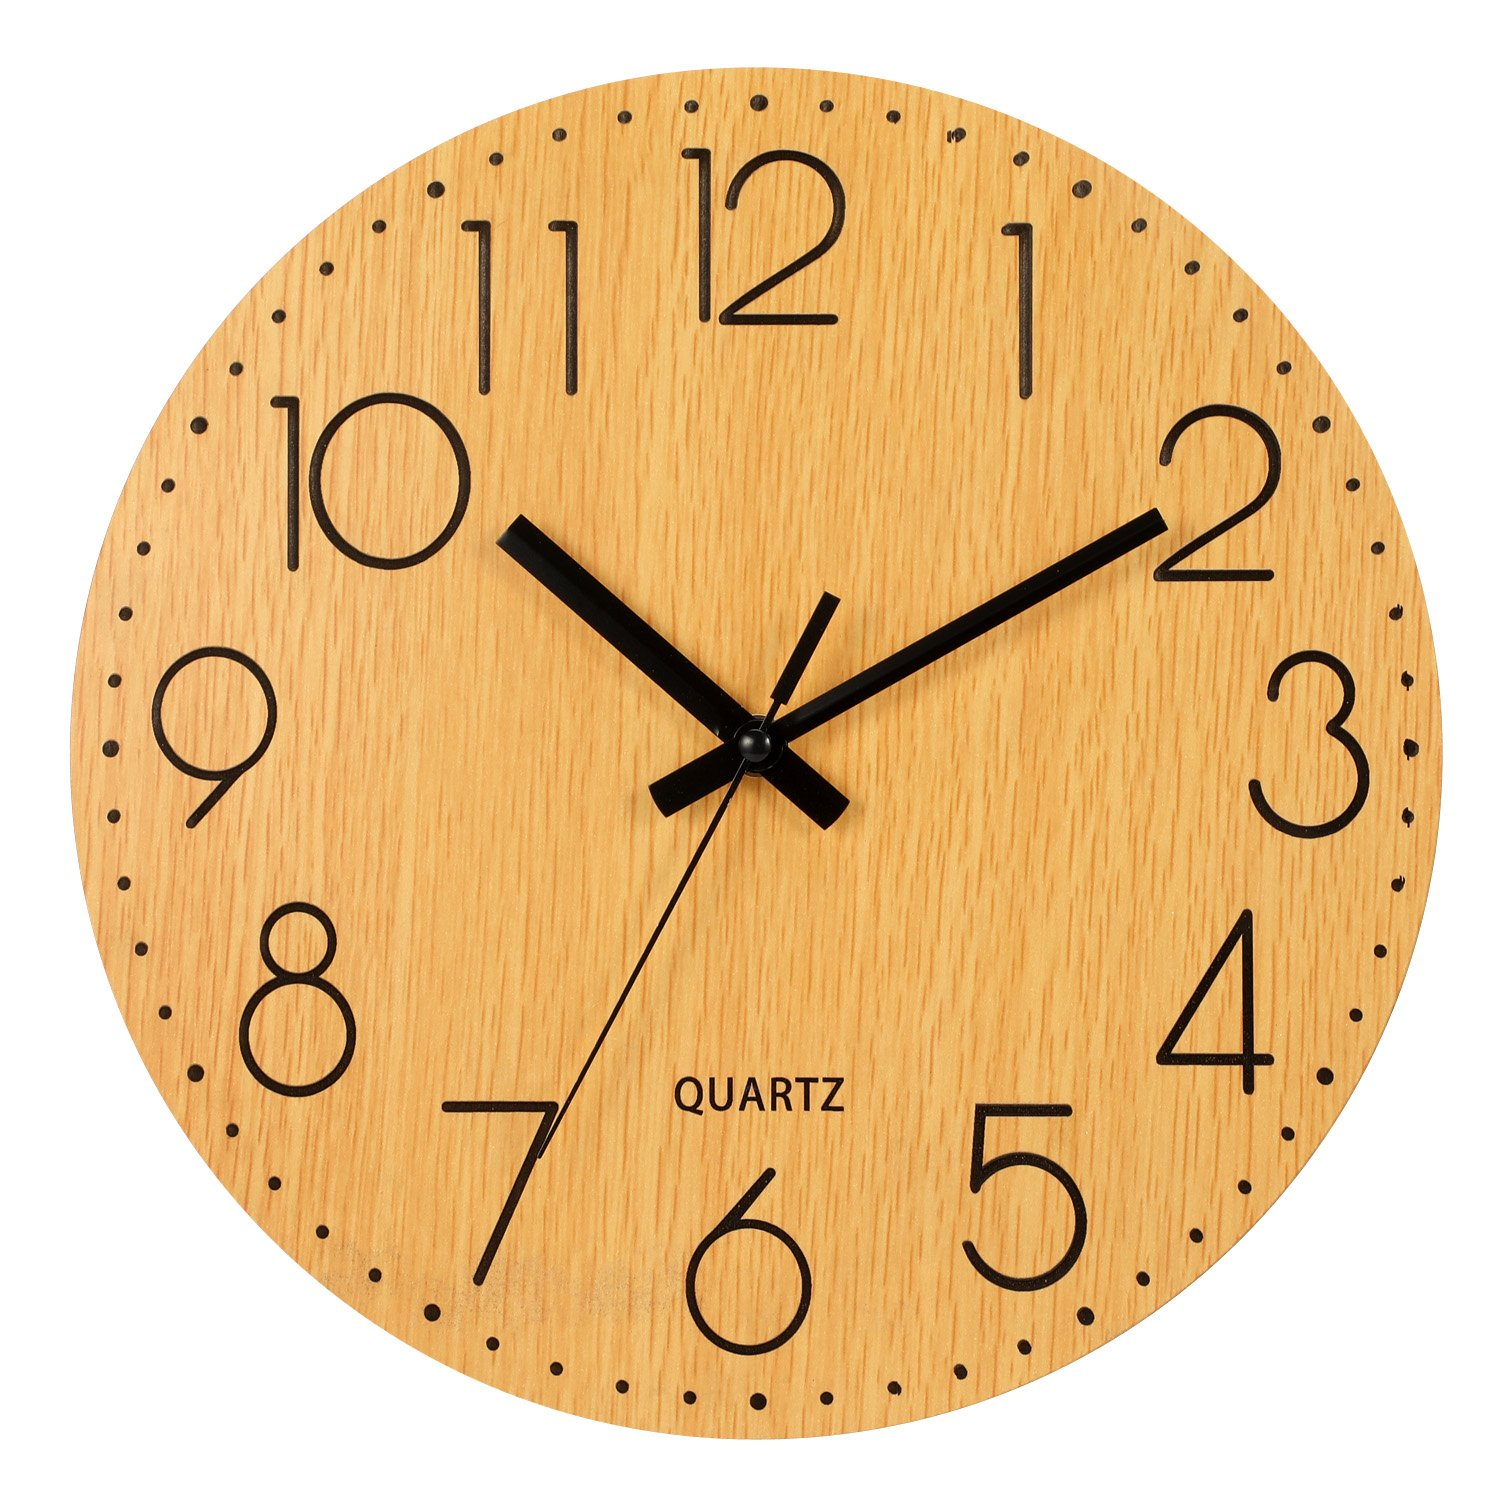 Genbaly 12'' Wooden Wall Clock, Arabic Numeral Design Rustic Country Tuscan Style Vintage Decorative Round Wall Clocks (Wood Color)